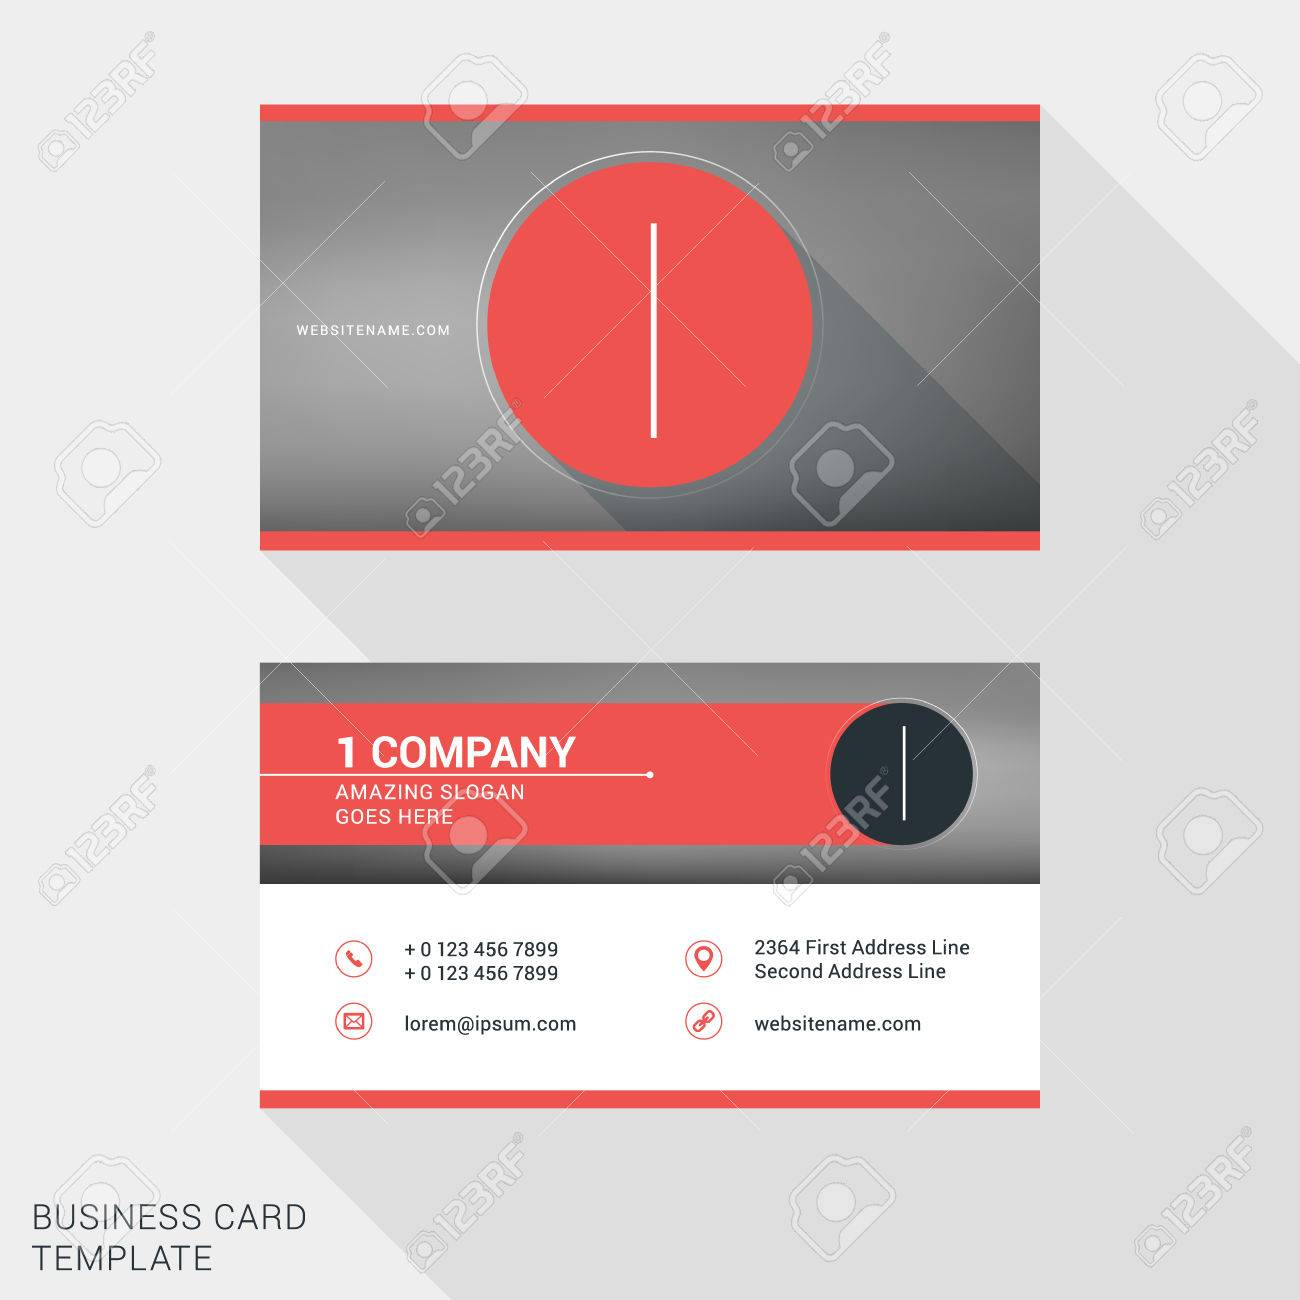 Creative and clean business card or name badge template logotype creative and clean business card or name badge template logotype number 1 flat design accmission Gallery